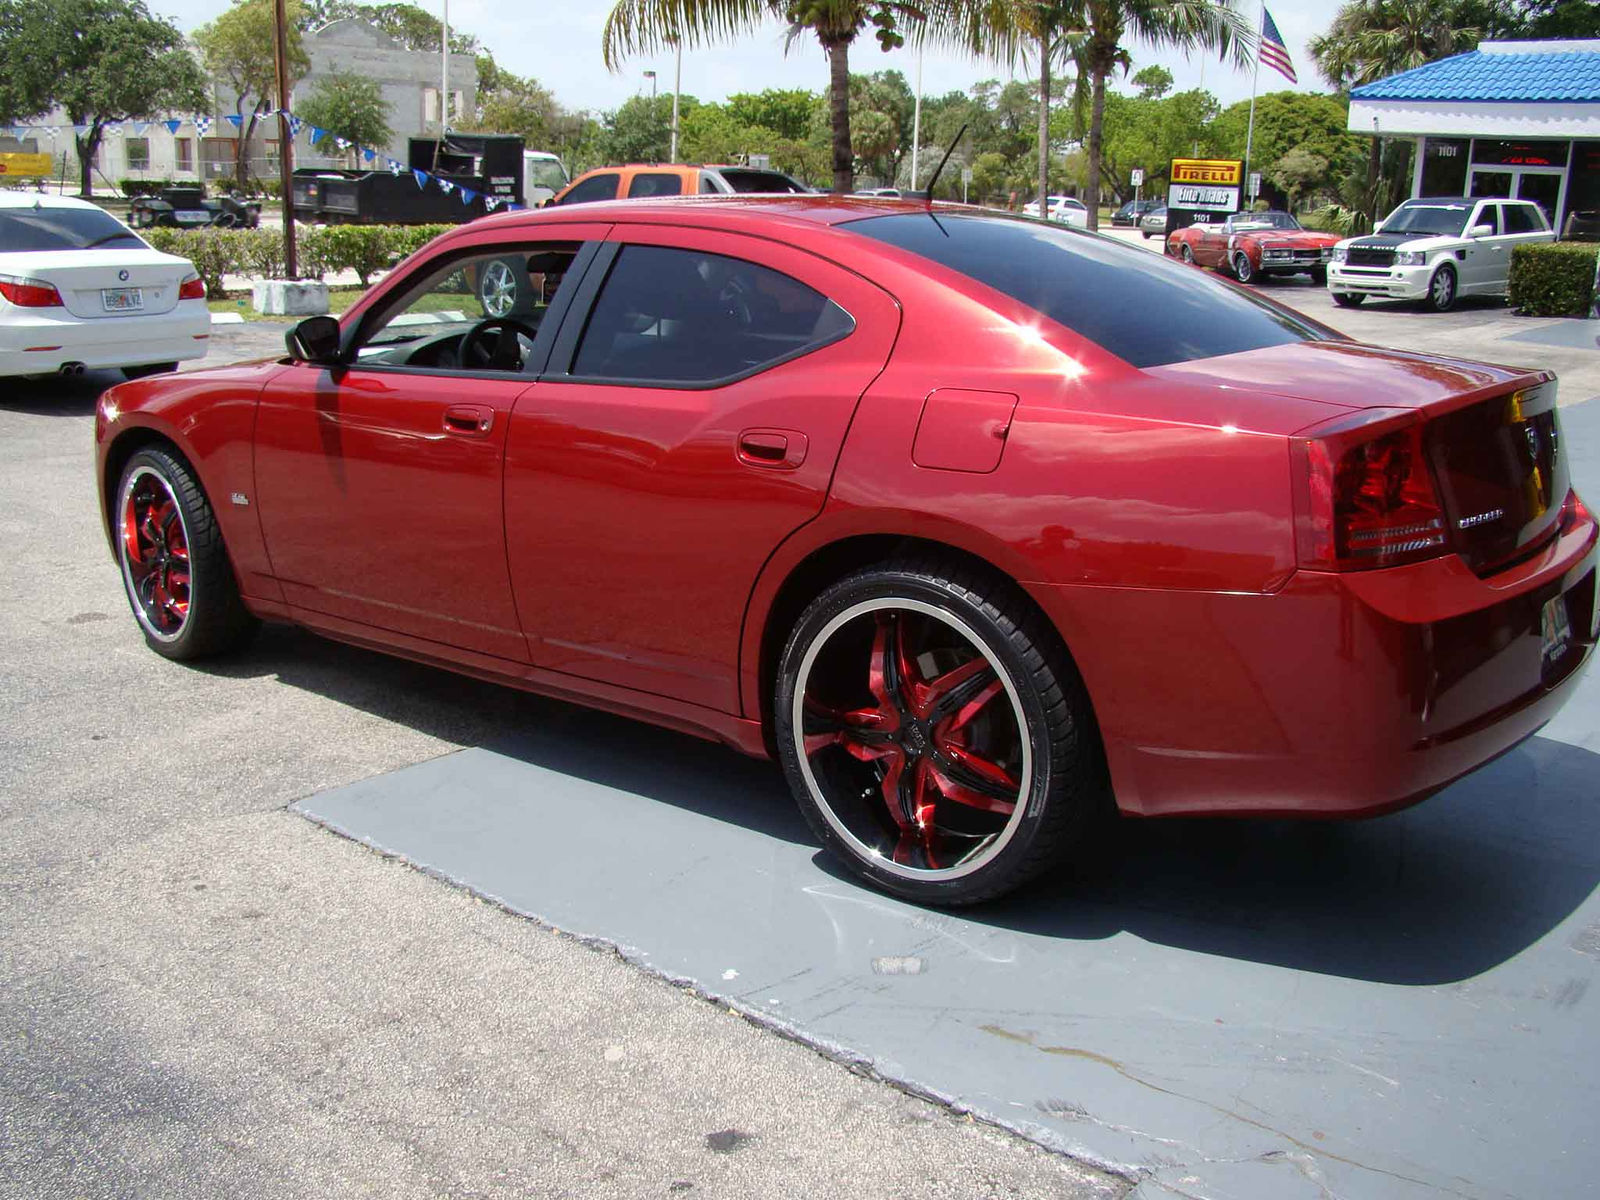 2010 Dodge Charger | Dodge Charger